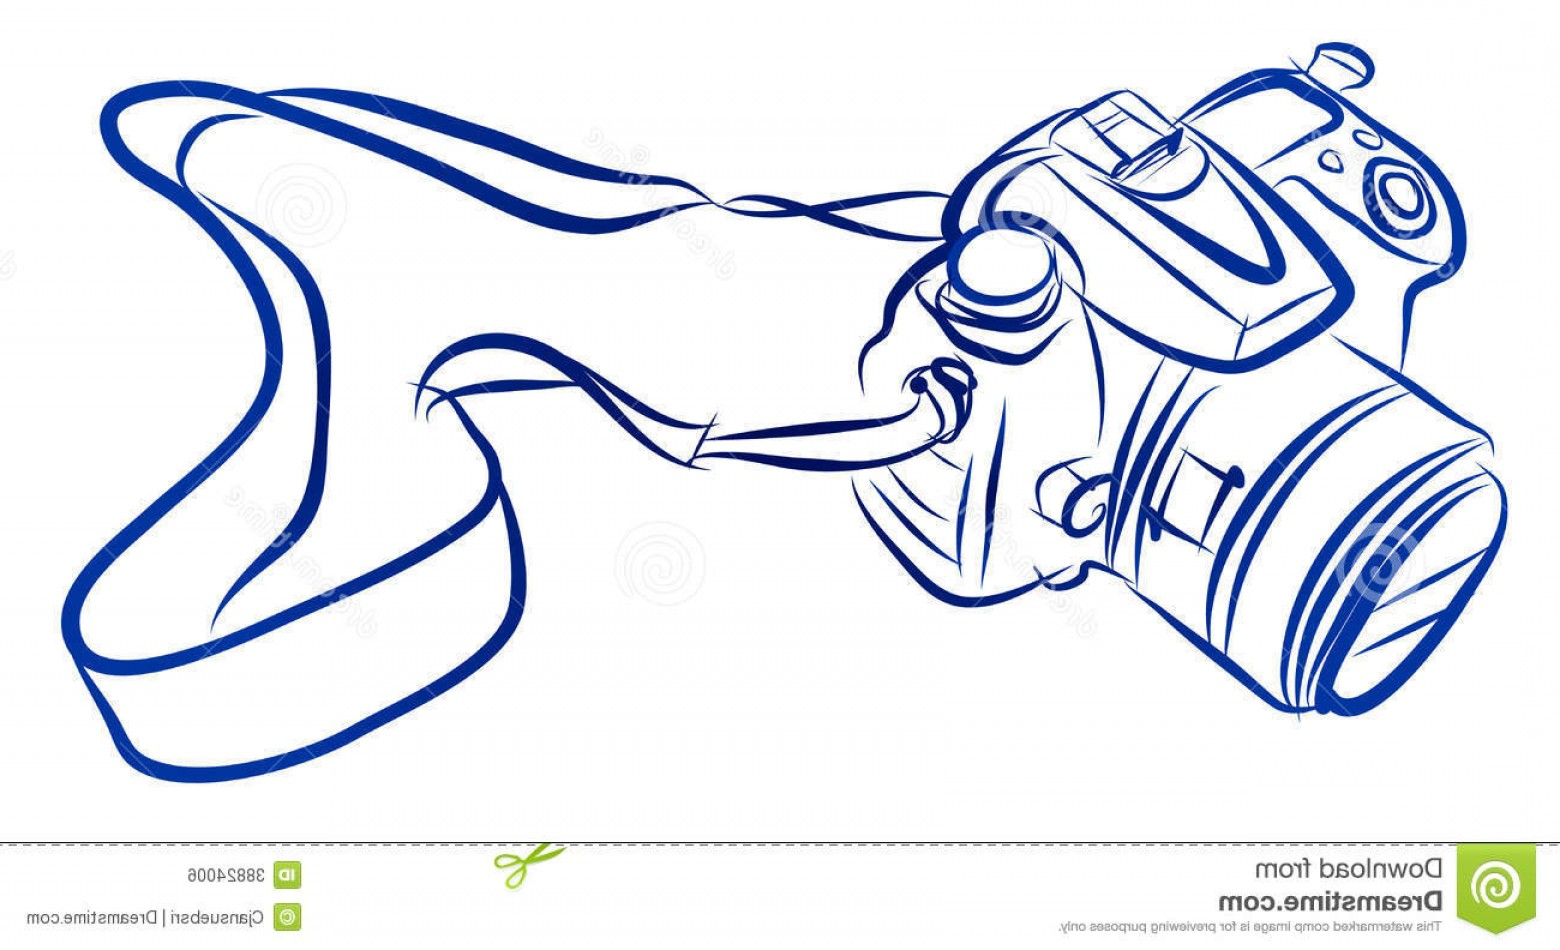 SLR Camera Vector: Royalty Free Stock Image Free Hand Sketch Dslr Camera Vector Illustration Image